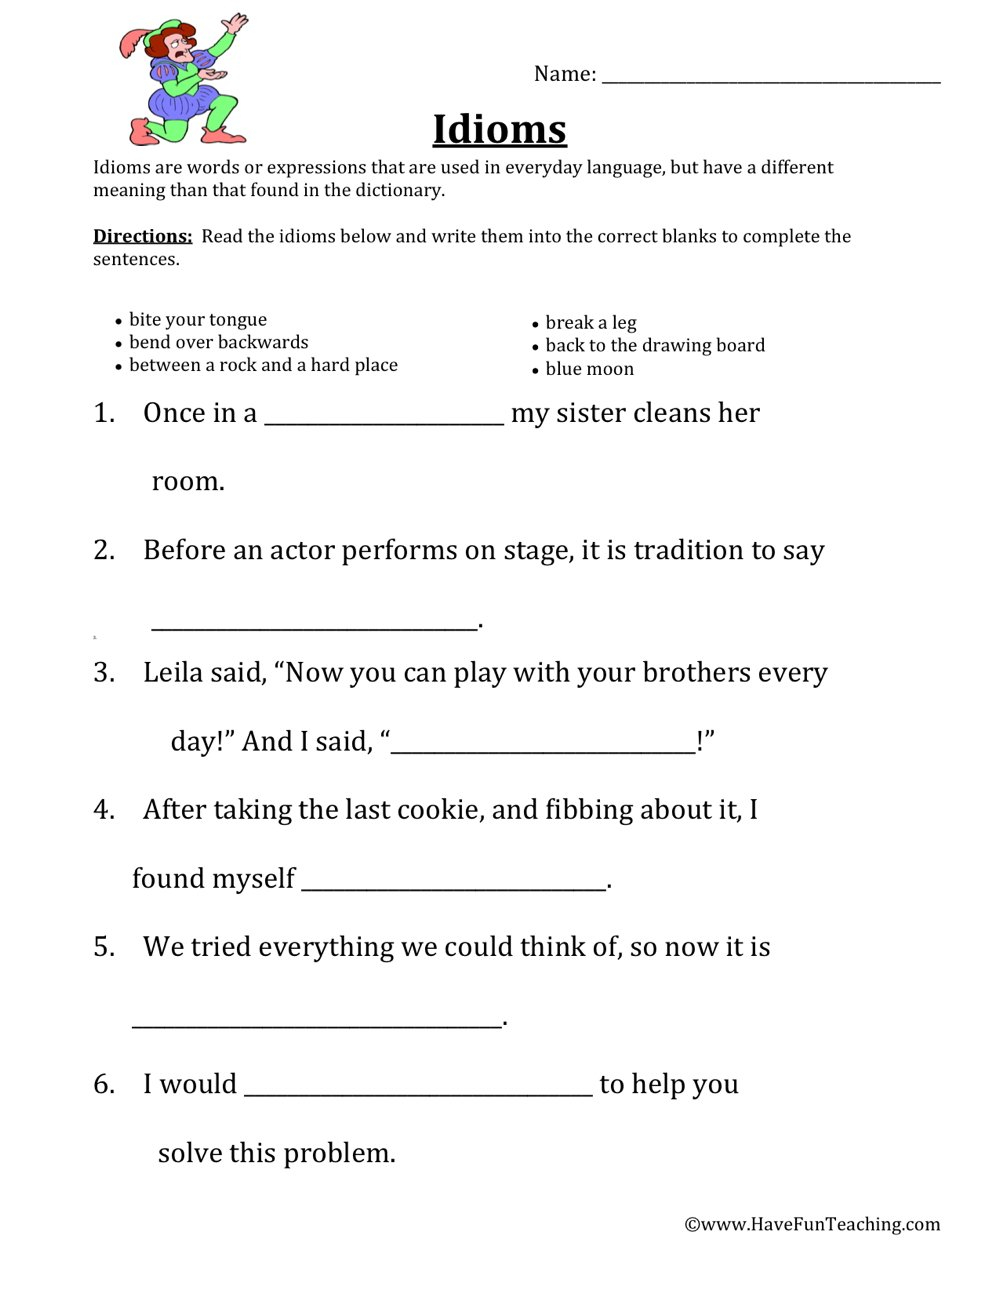 Idioms Worksheets  Have Fun Teaching Intended For Idioms Worksheets Pdf